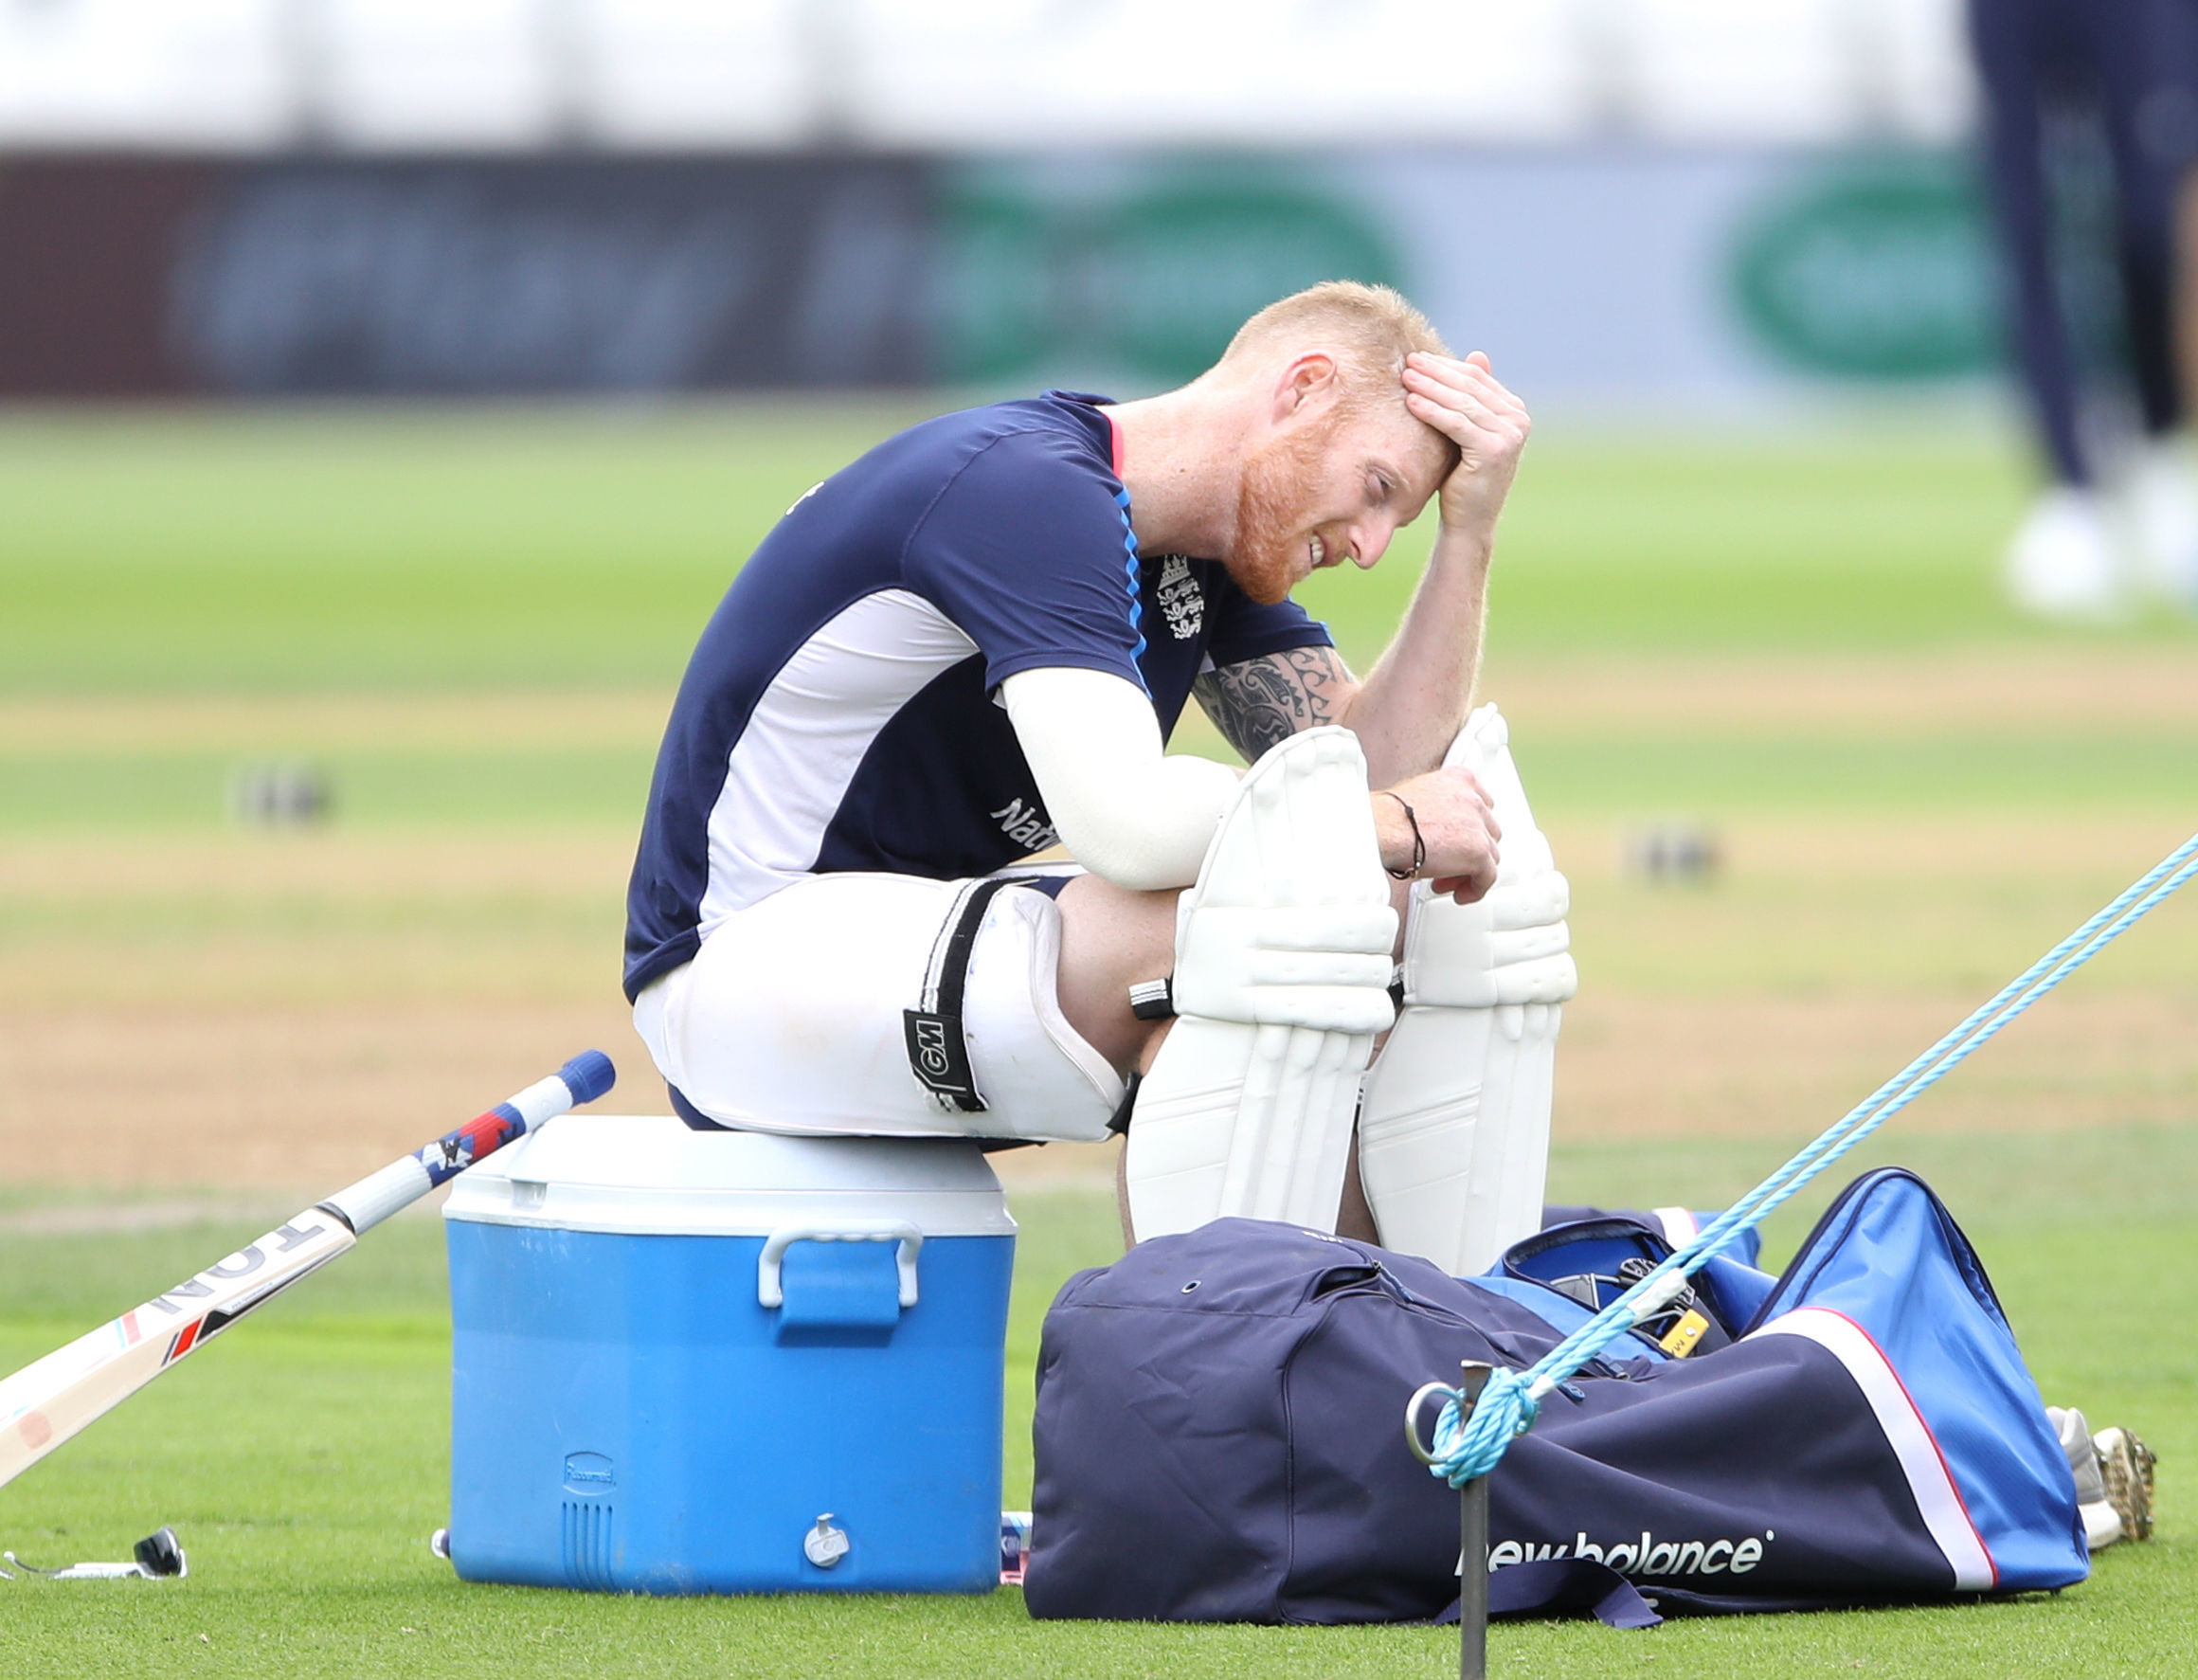 England's Ben Stokes during the nets session at Trent Bridge, Nottingham. Picture: PA